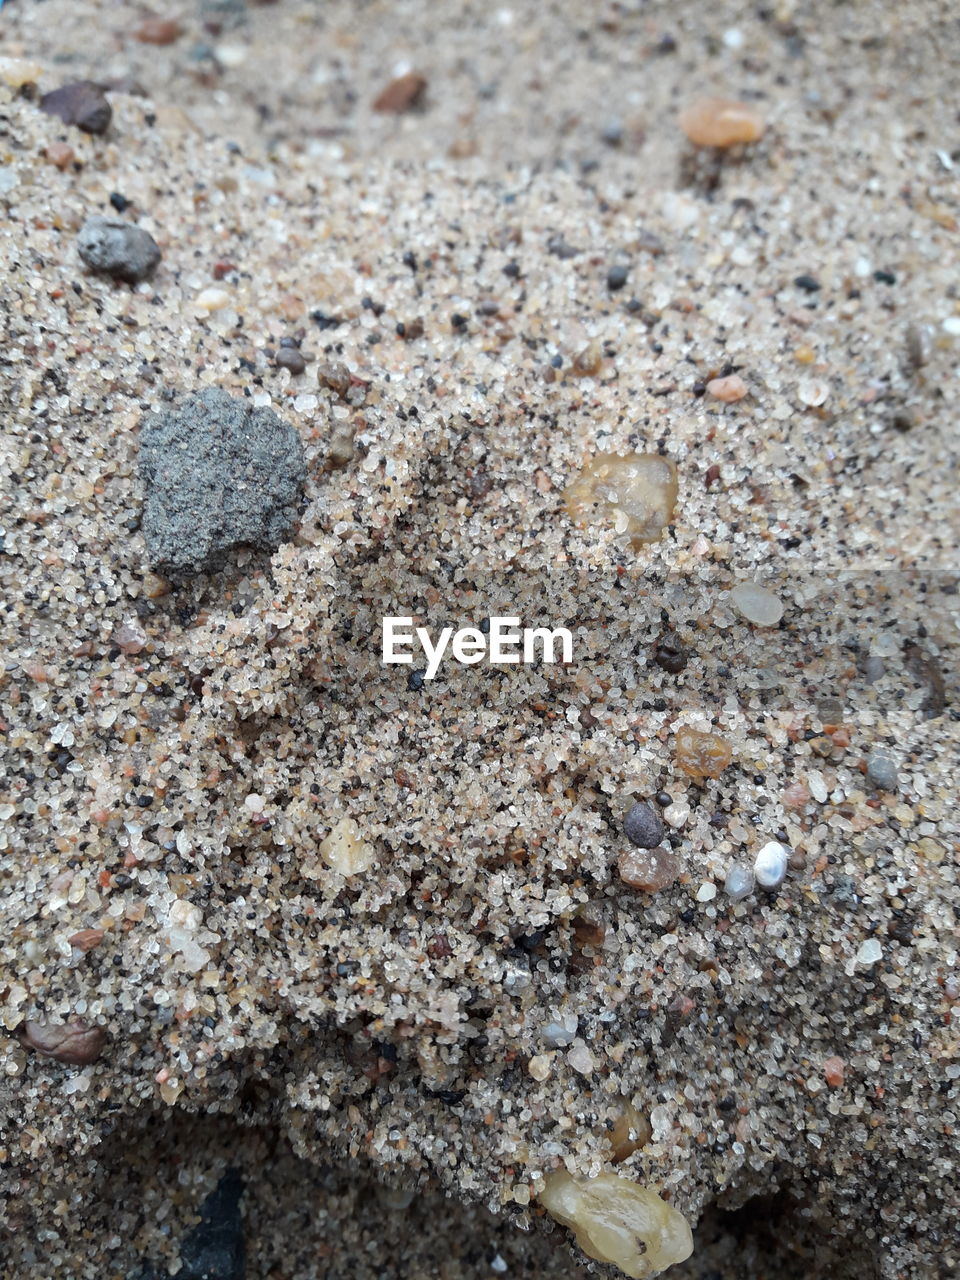 textured, rock - object, sand, backgrounds, beach, nature, close-up, full frame, no people, day, outdoors, salt - mineral